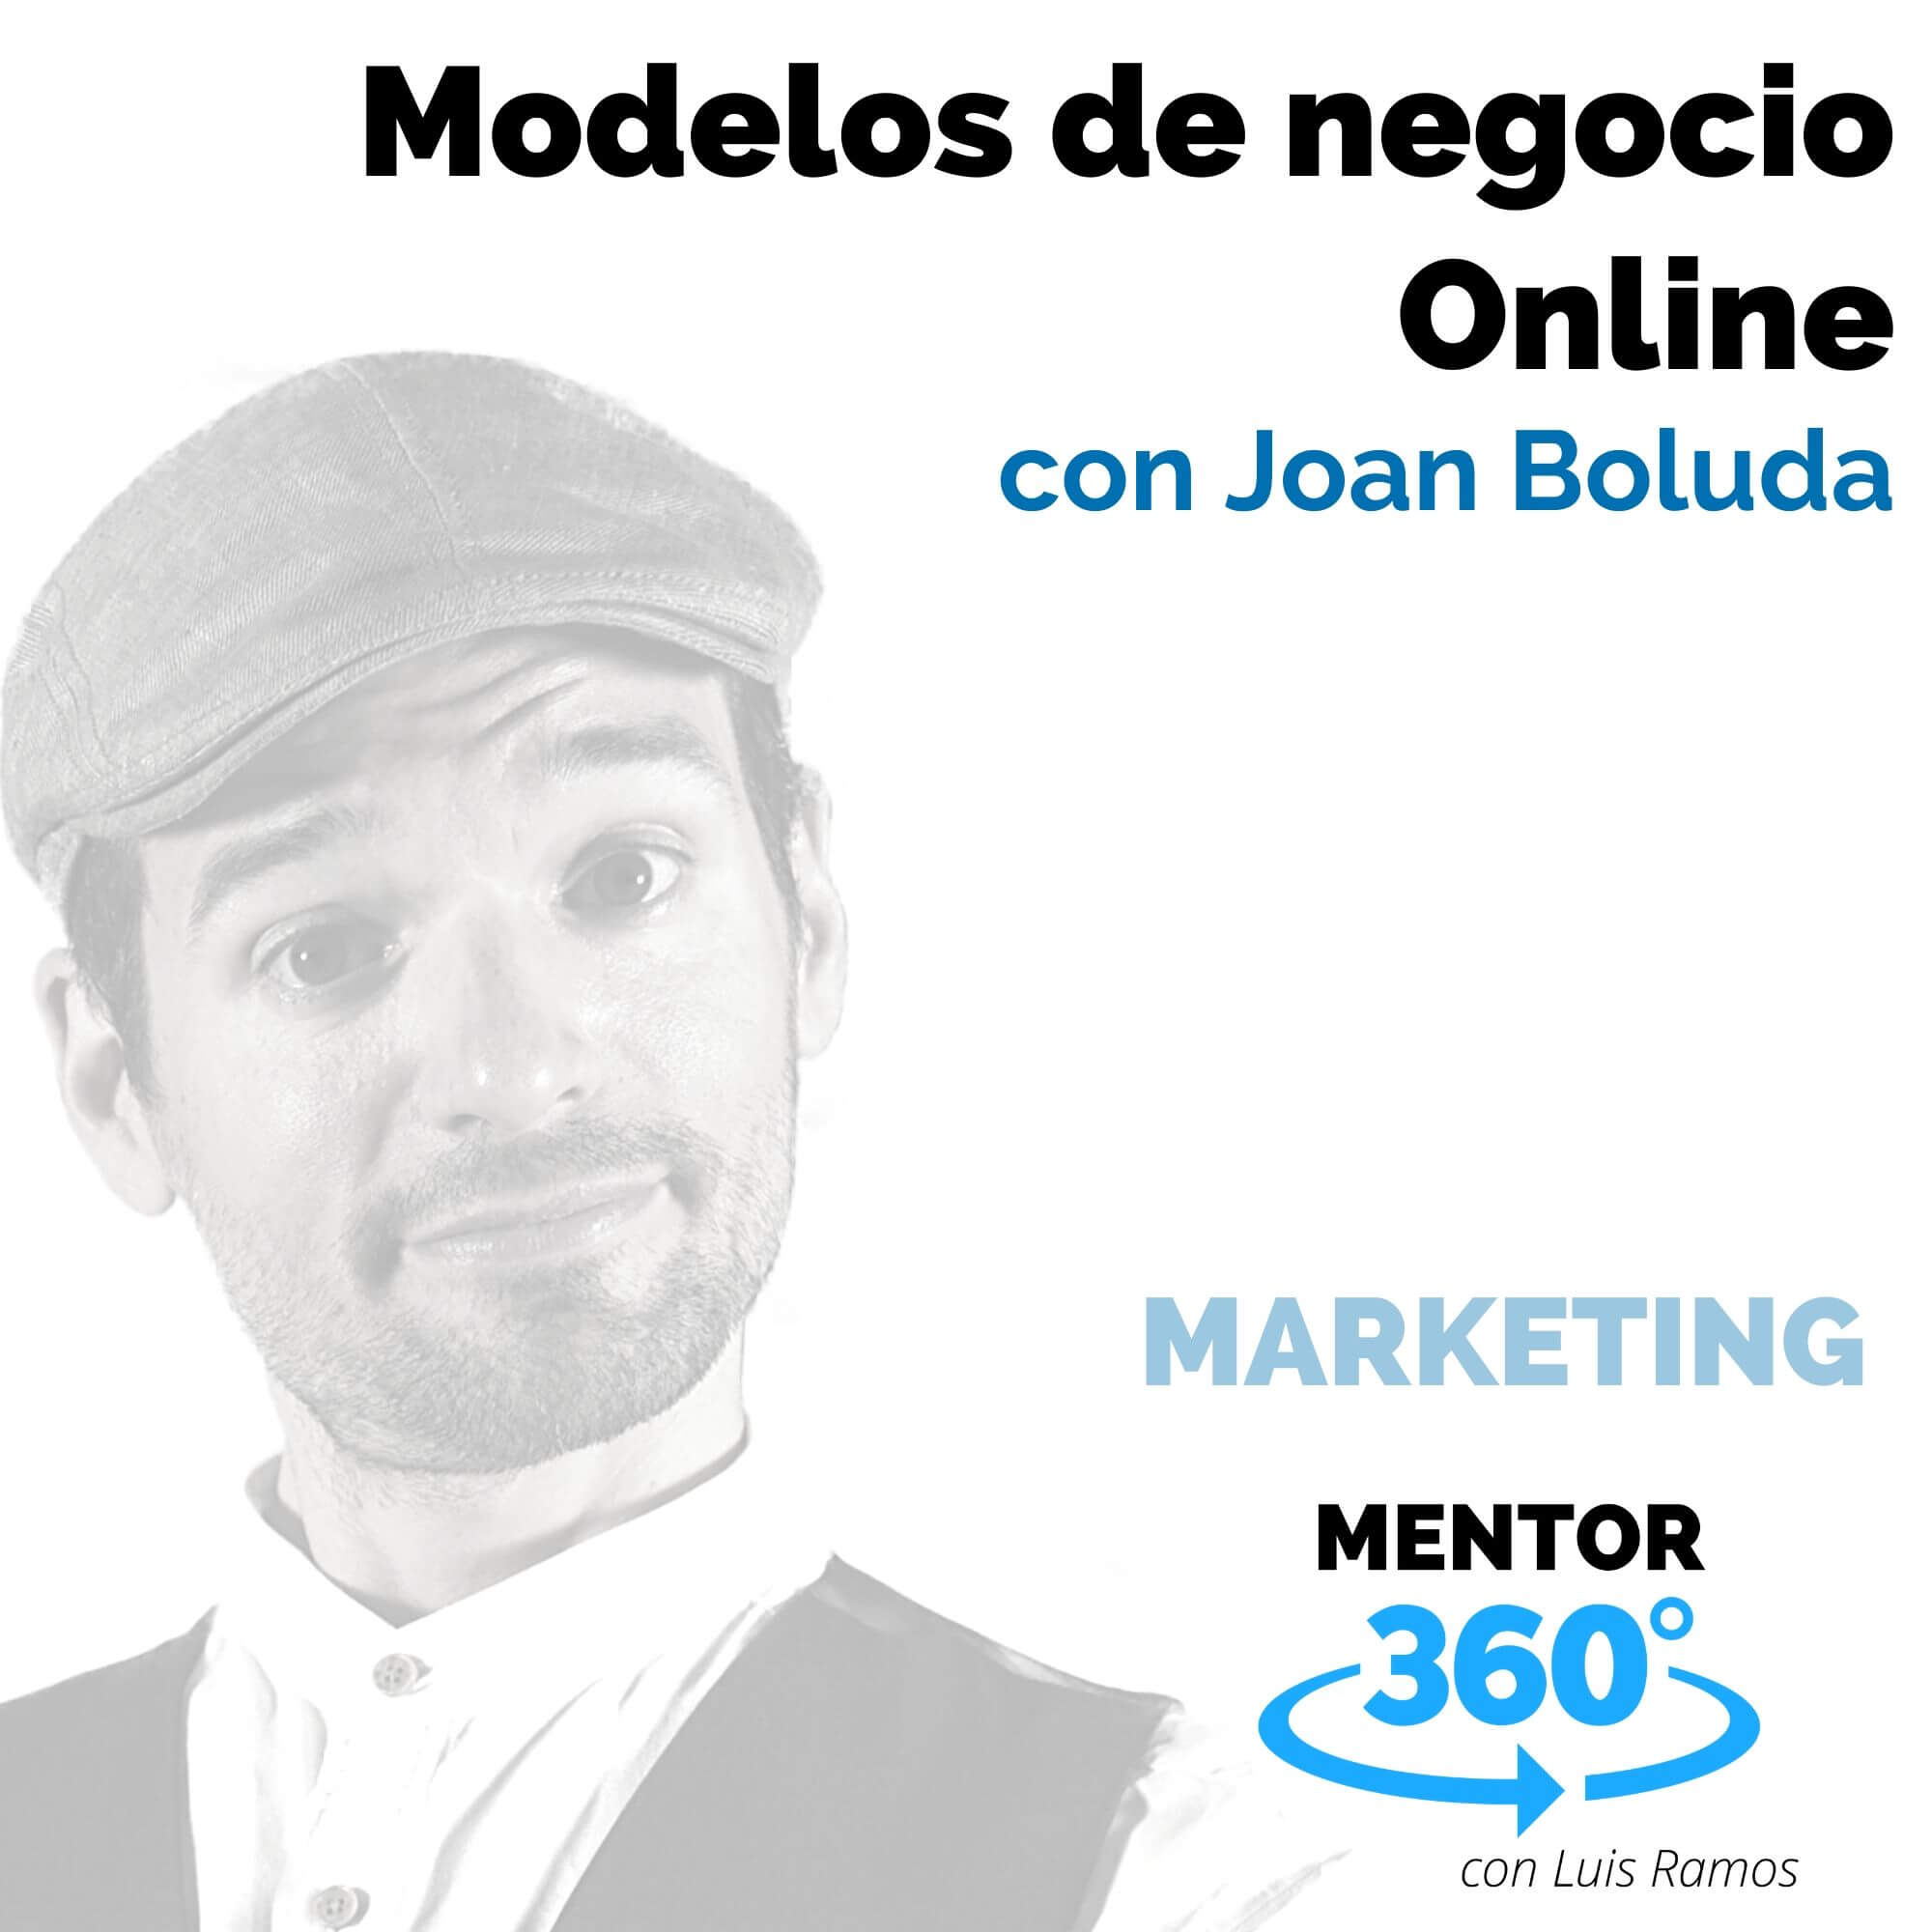 Los 3 caminos para emprender, con Joan Boluda - MARKETING